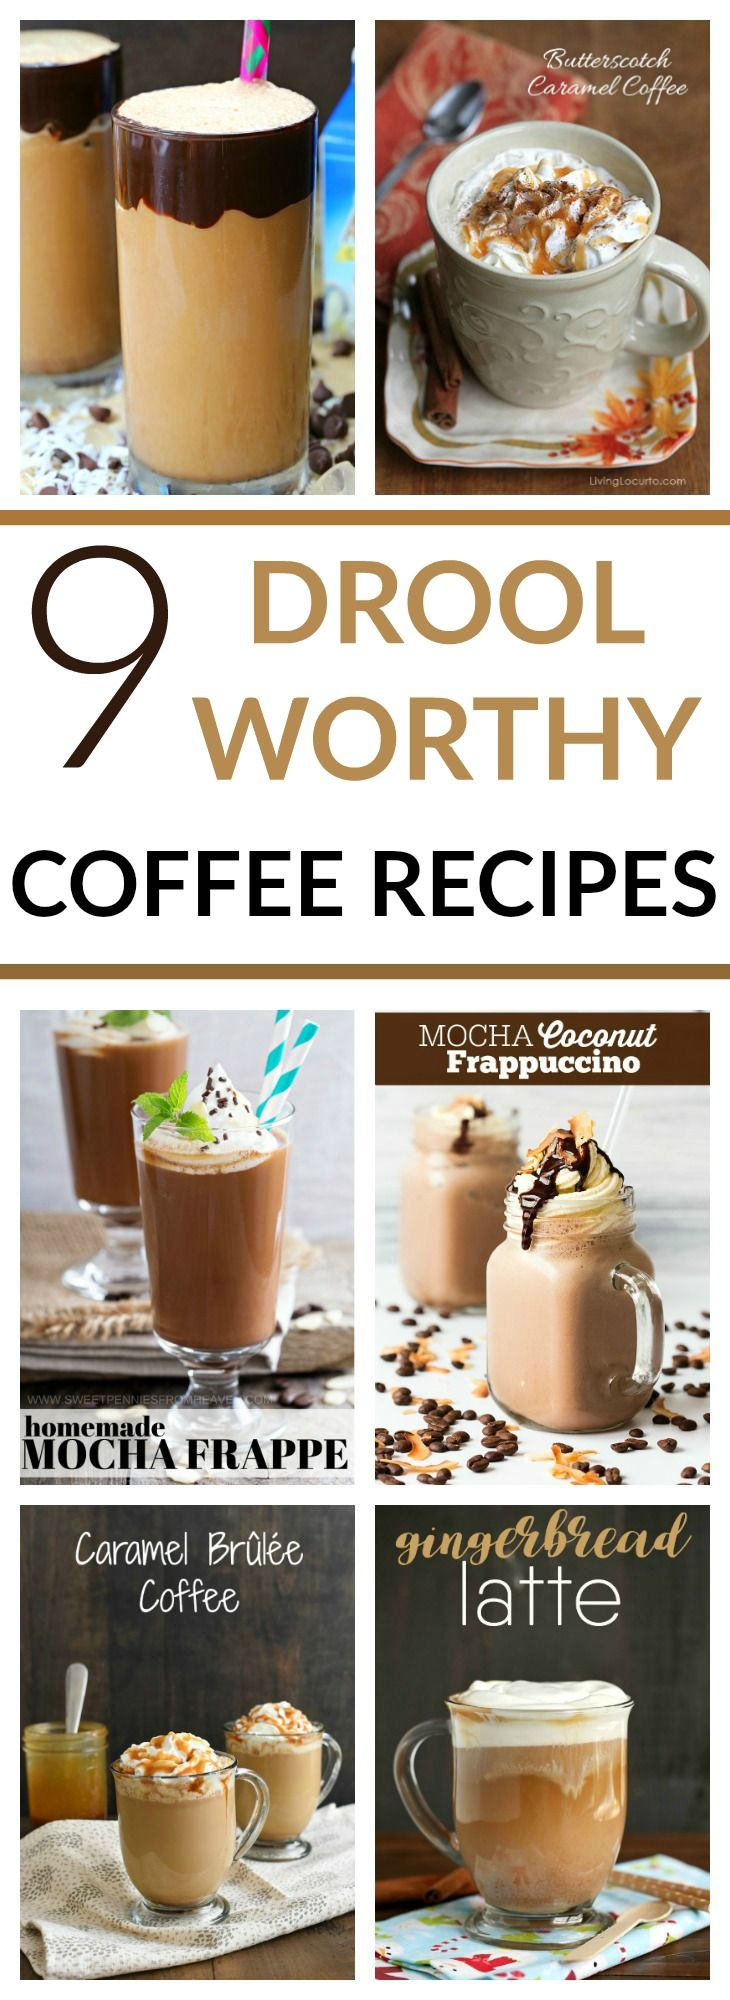 Photo of 9 Drool Worthy Coffee Recipes on Pinterest – Celebrate National Coffee Day with Folgers Perfect Measures